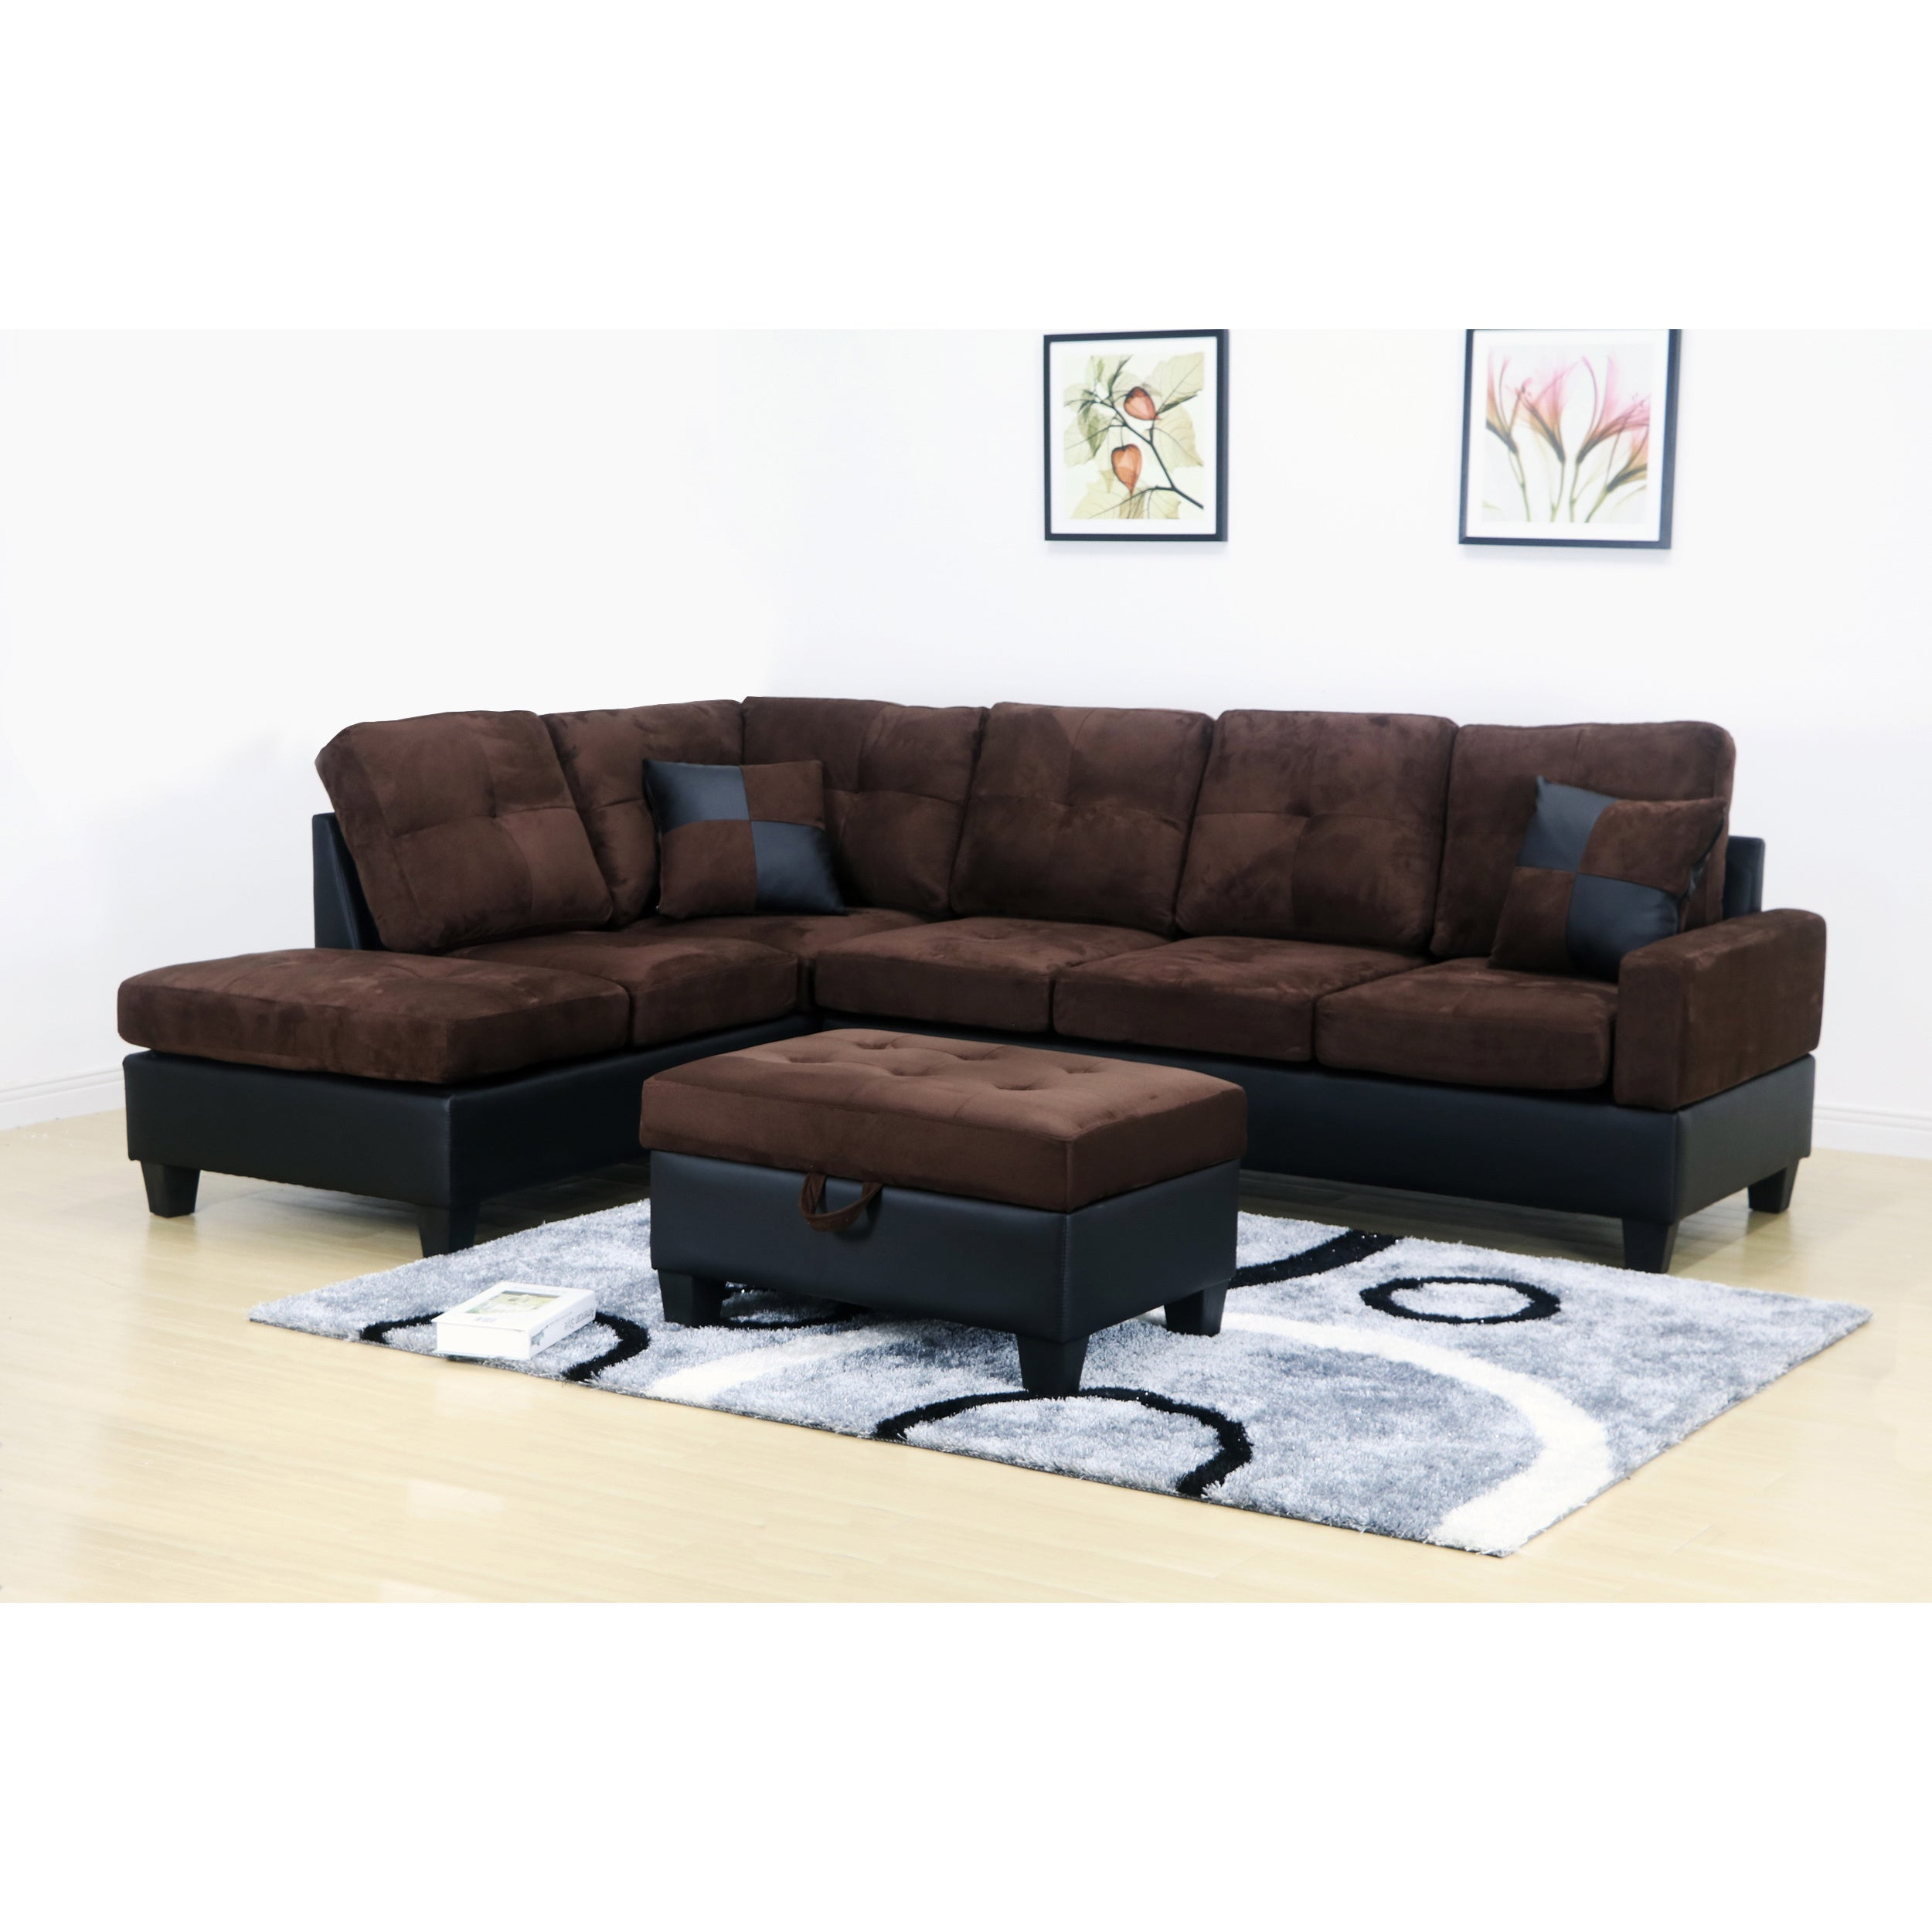 Shop Charlie Dark Brown Microfiber Sectional Sofa and Storage ...